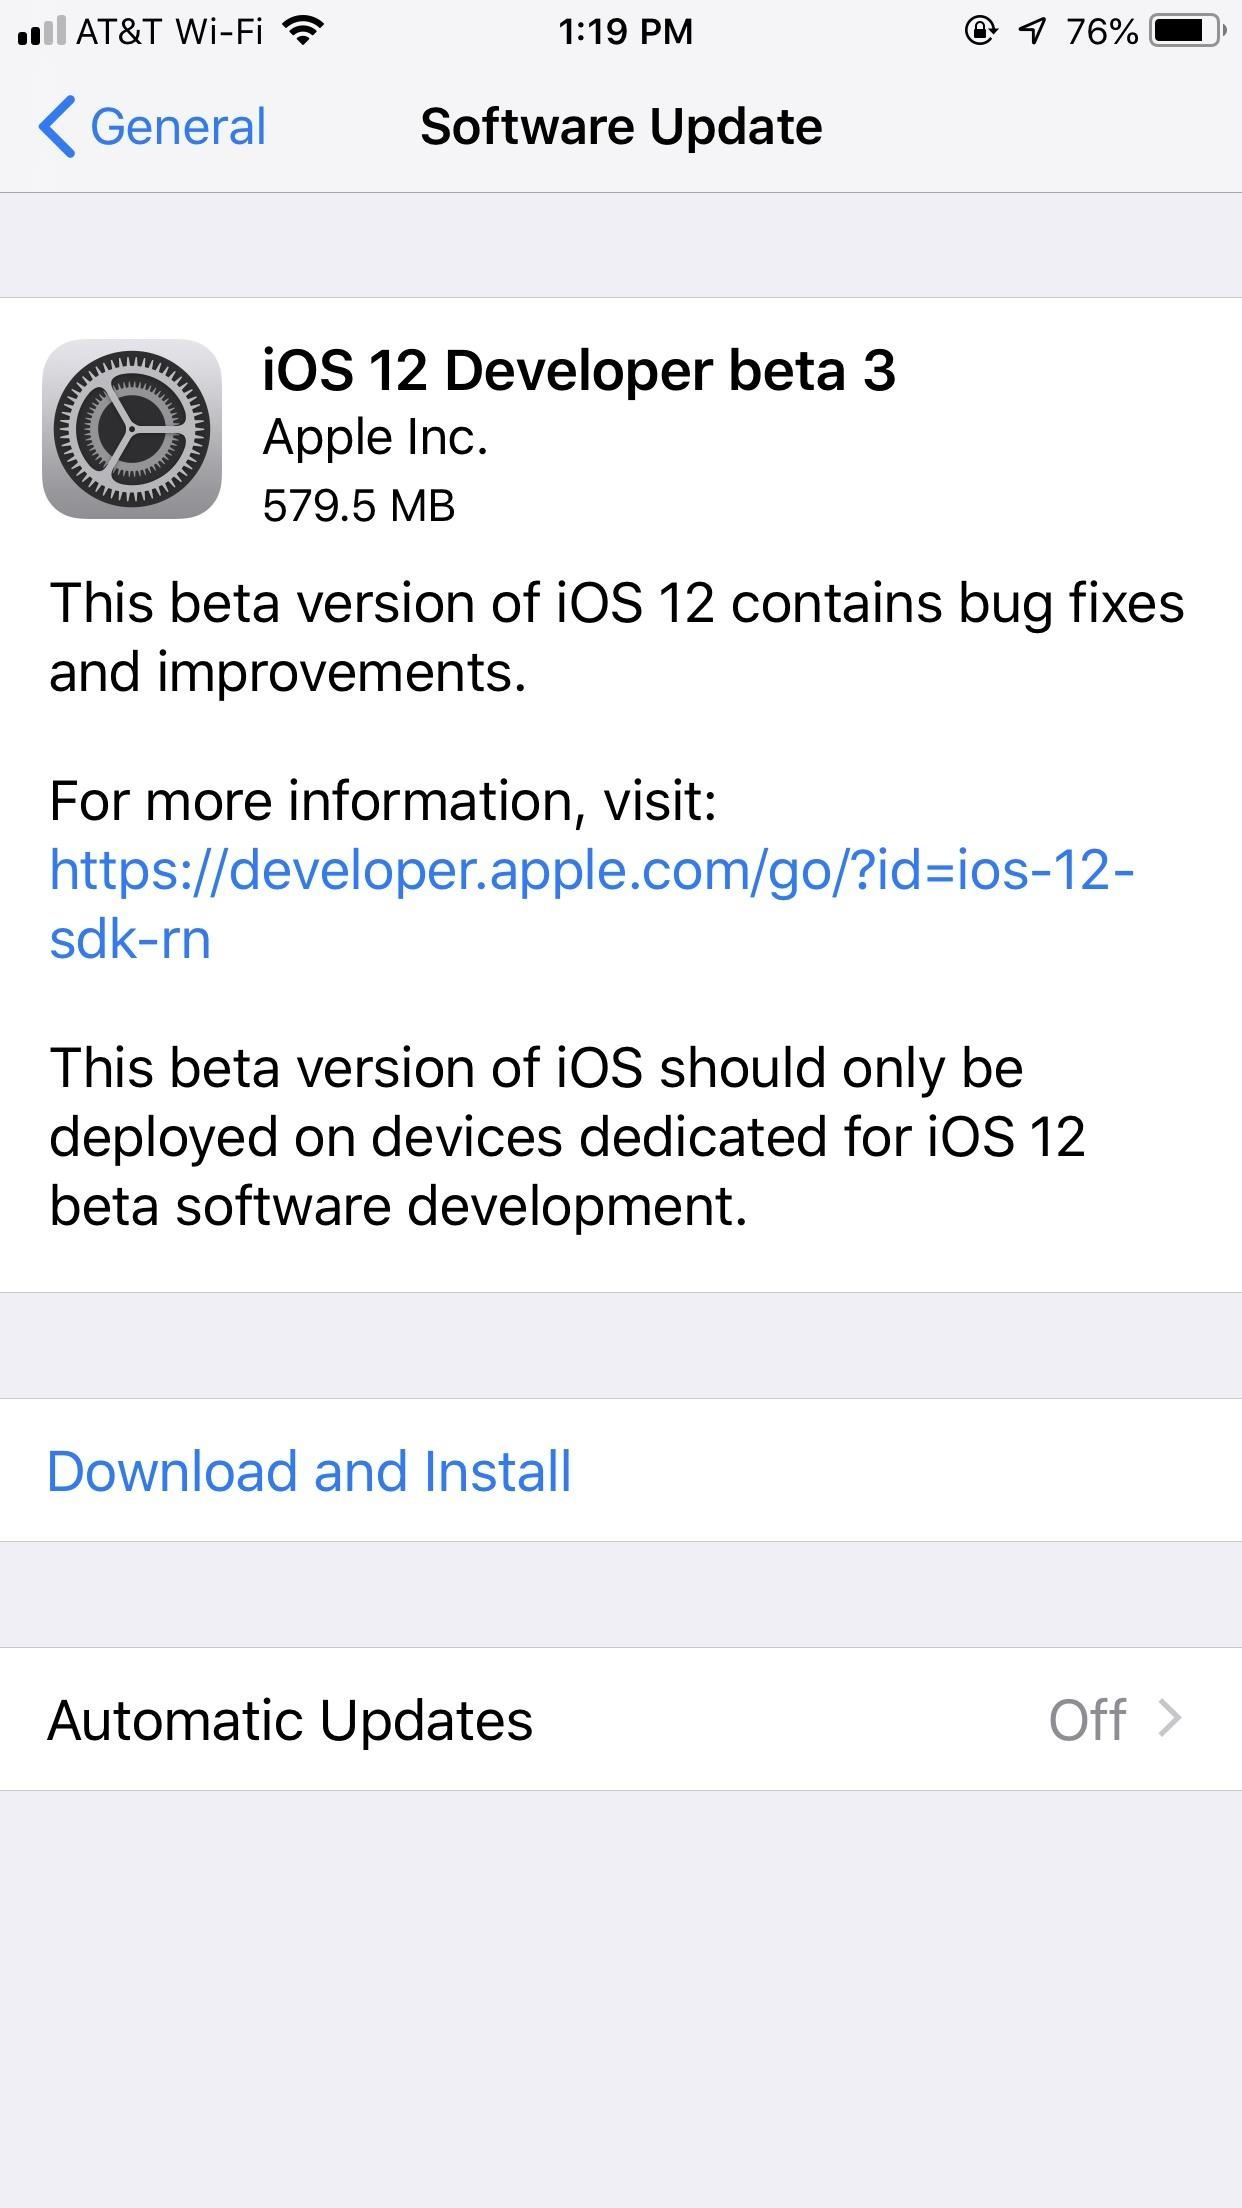 Released: iOS 12 Dev Beta 3 (Public Beta 2), Includes Improved Maps, Bug Fixes & Security Patches